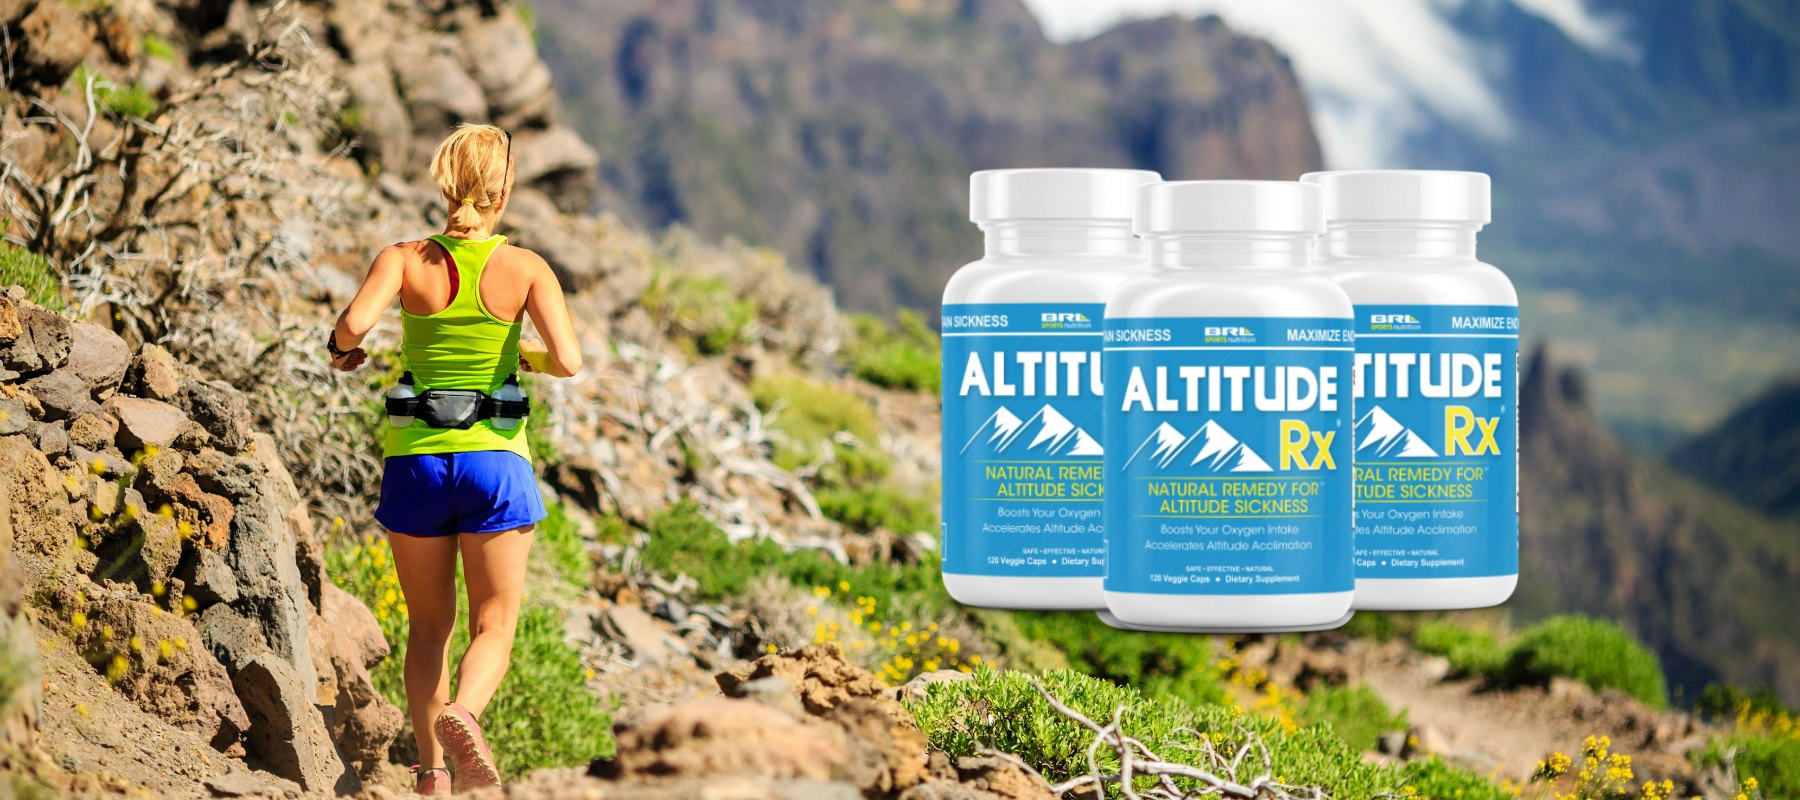 AltitudeRx altitude sickness supplement